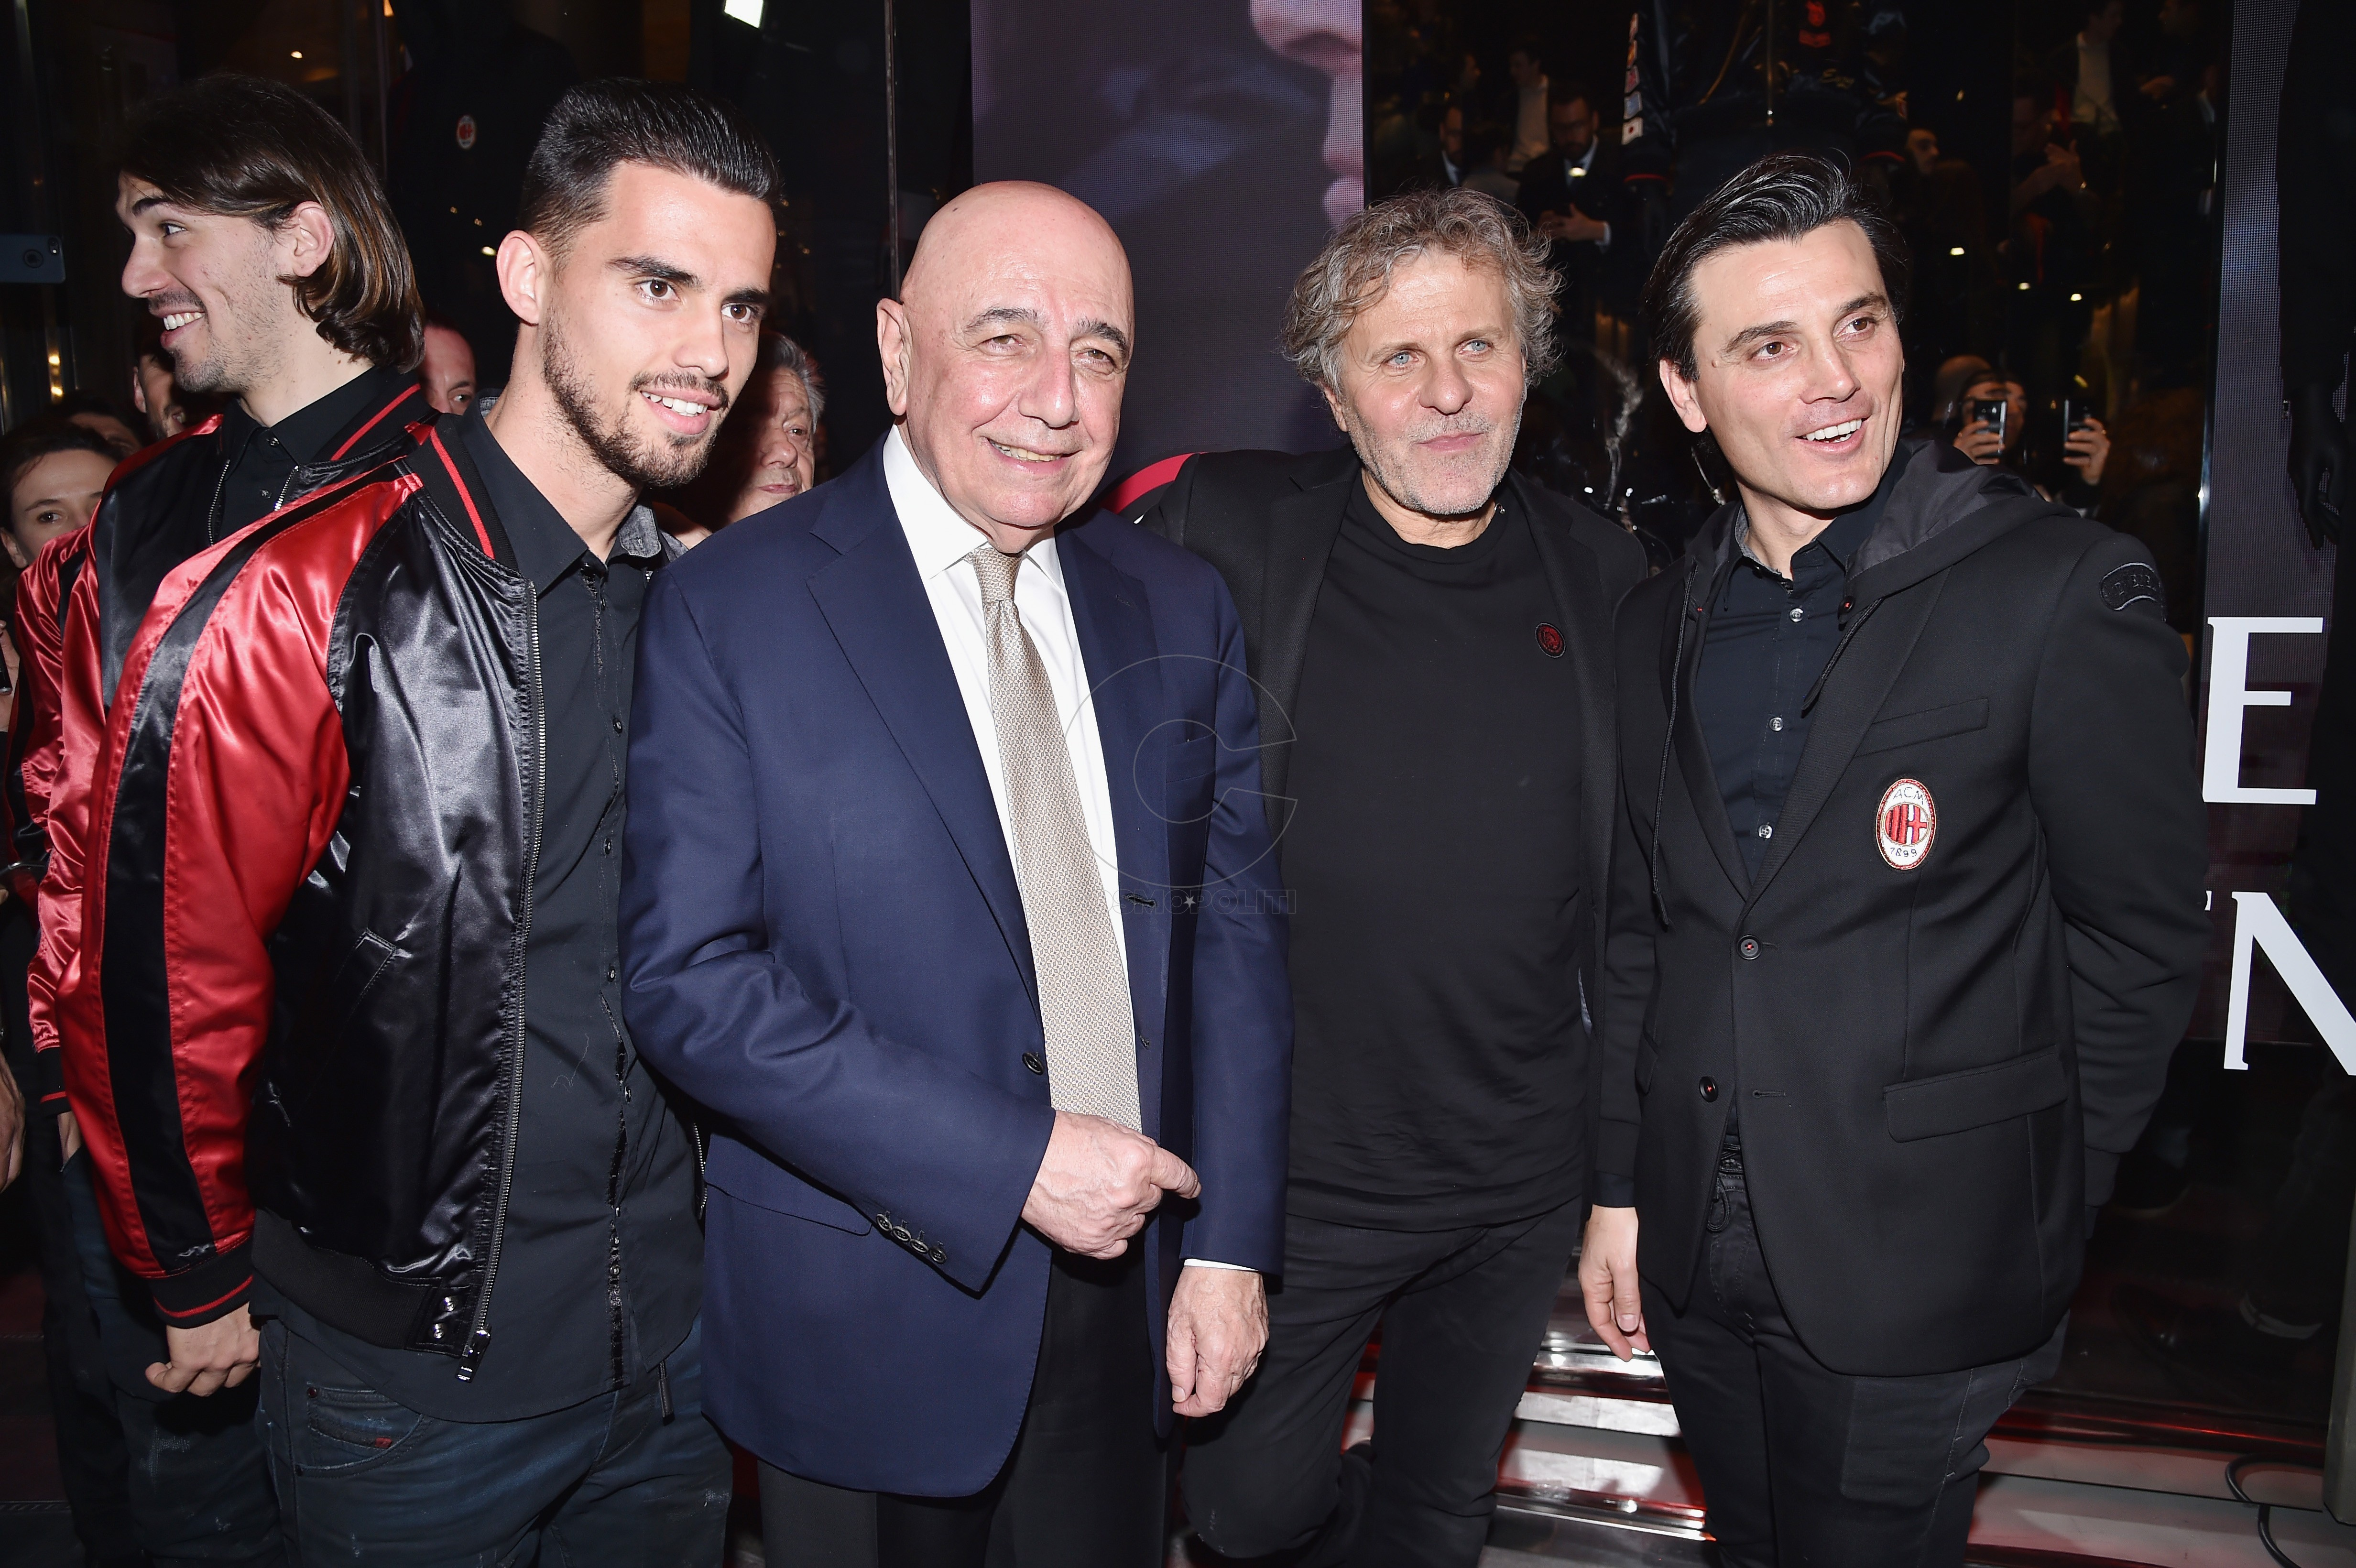 MILAN, ITALY - MARCH 14: (L-R) Jesus Joaquin Fernandez Saez de la Torre (also know as Suso), Adriano Galliani, Renzo Rosso and Vincenzo Montella attend The New Bomber Presentation at the Diesel Store on March 14, 2017 in Milan, Italy. (Photo by Jacopo Raule/Getty Images for Diesel)